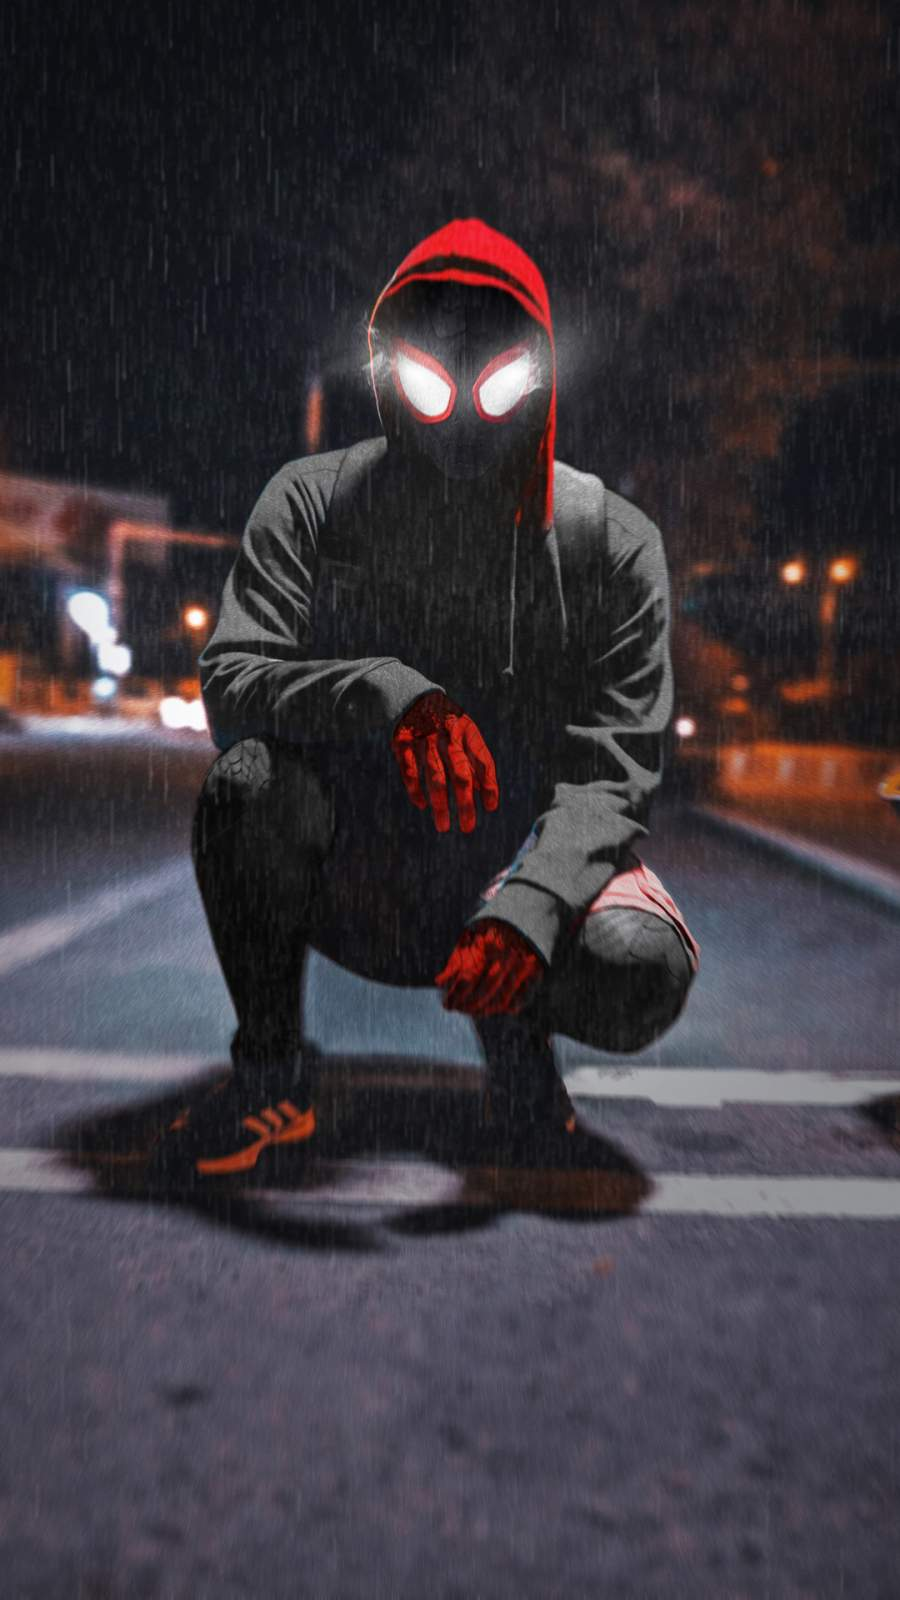 Spiderman in Hoodie Night Monkey iPhone Wallpaper